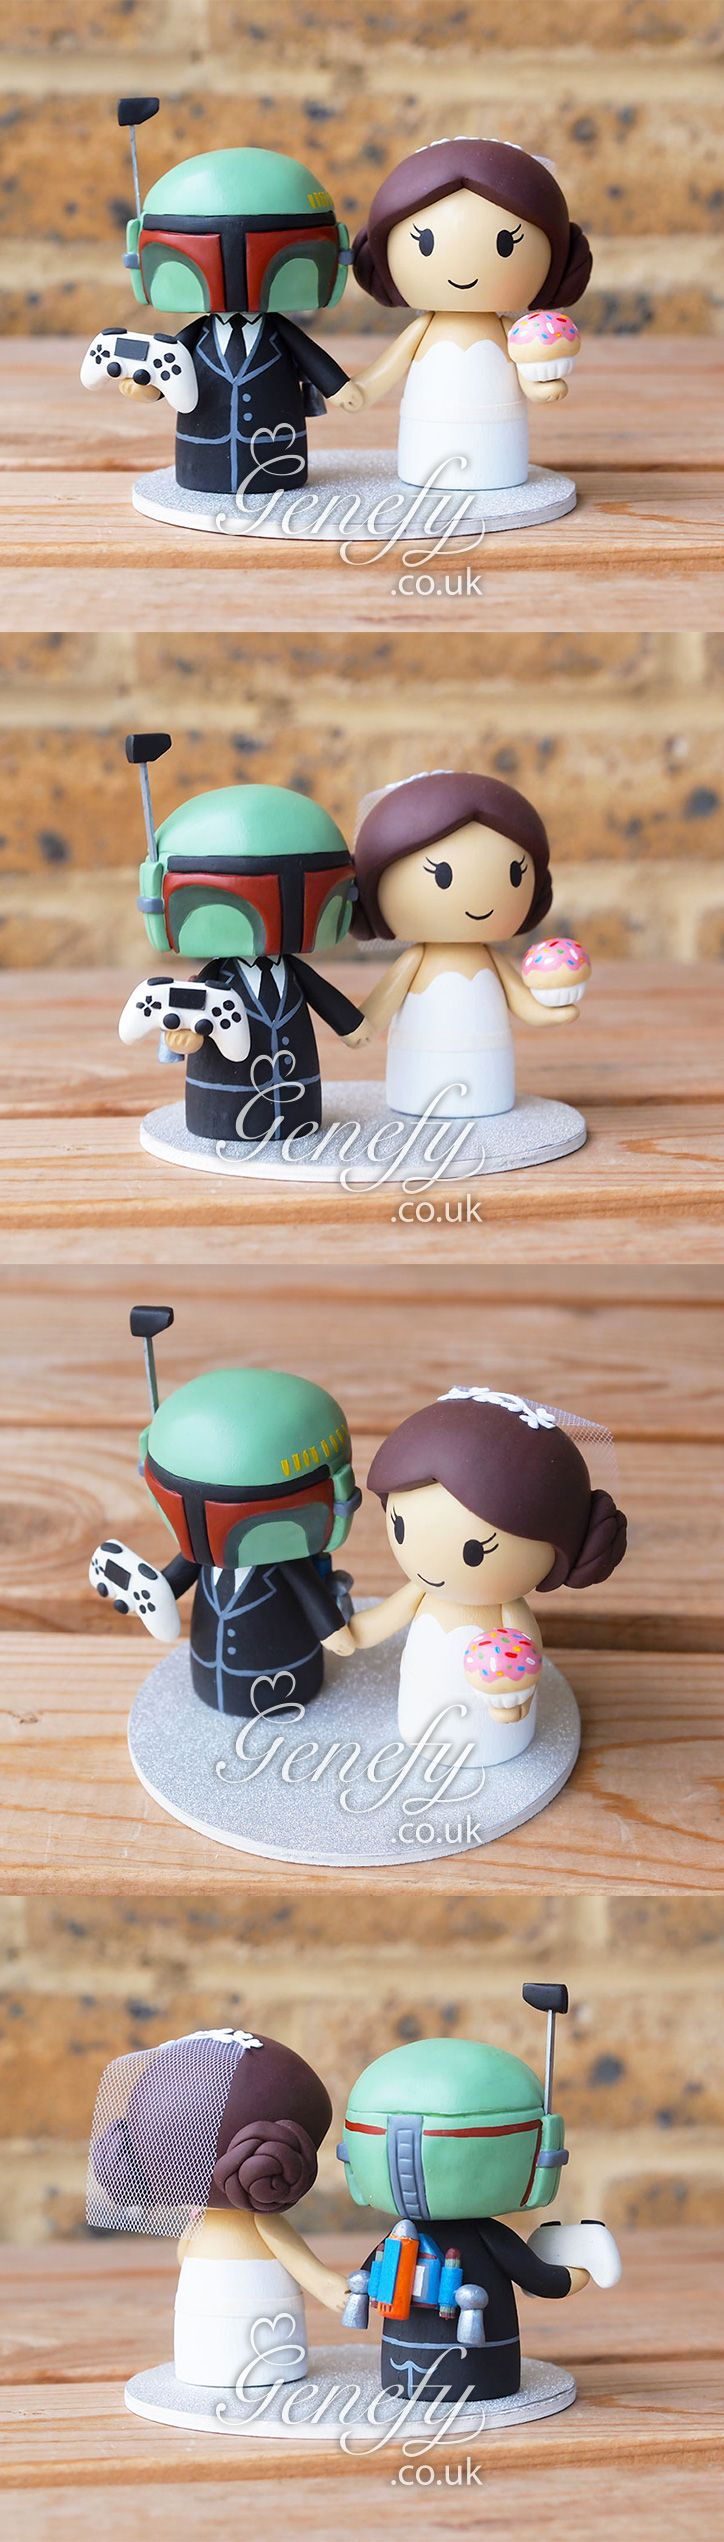 Boba Fett with jetpack wedding cake topper by Genefy Playground  https://www.facebook.com/genefyplayground